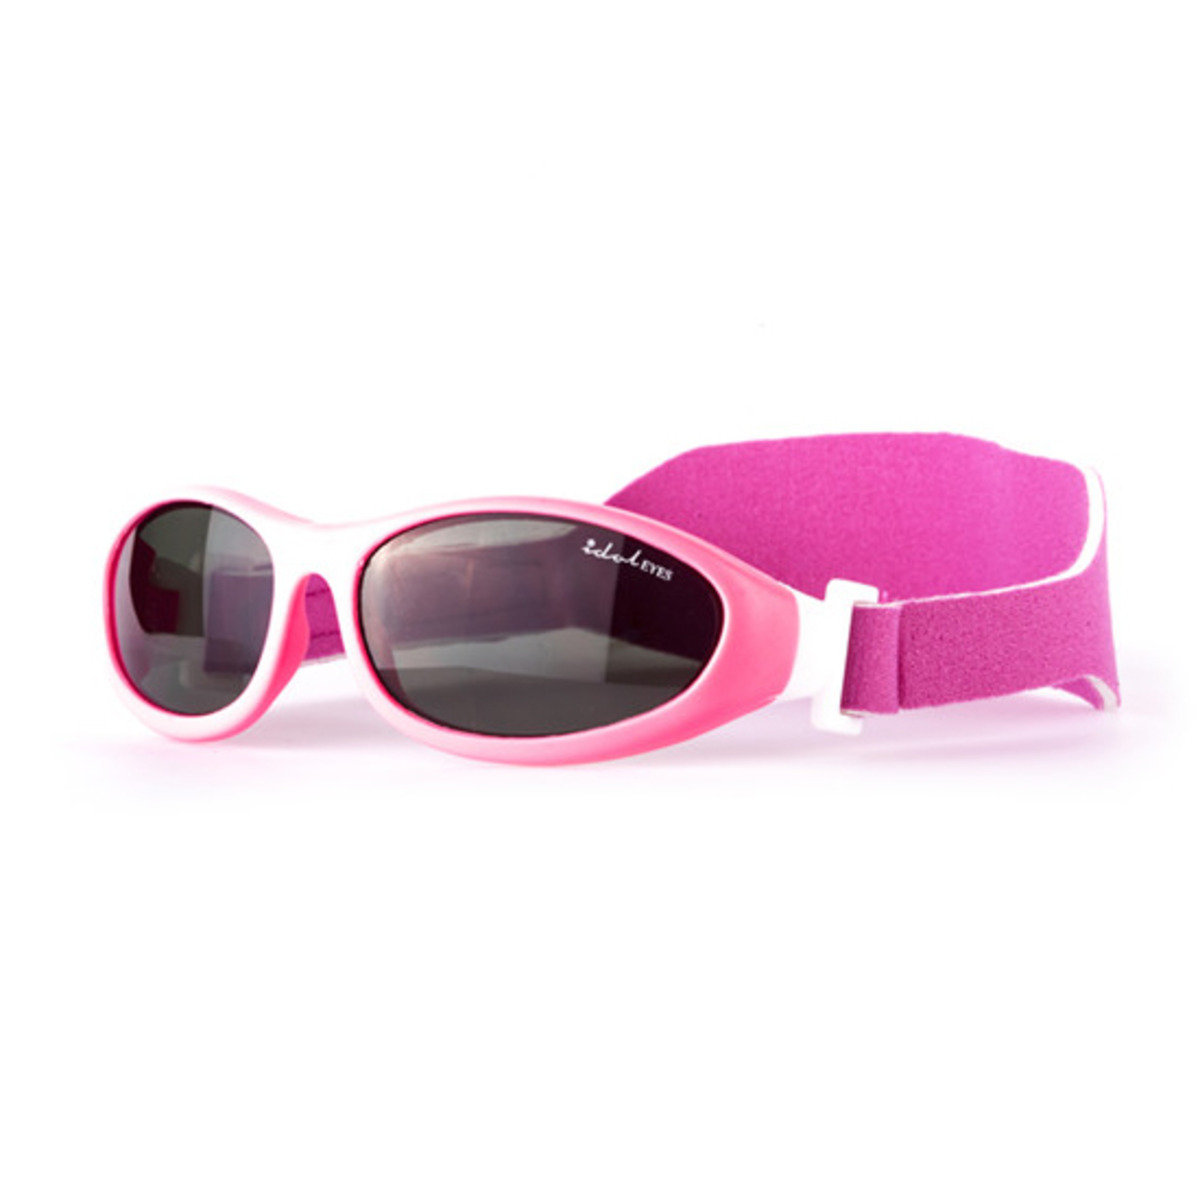 ee485fffc5cf BABY WRAPZ headband sunglasses